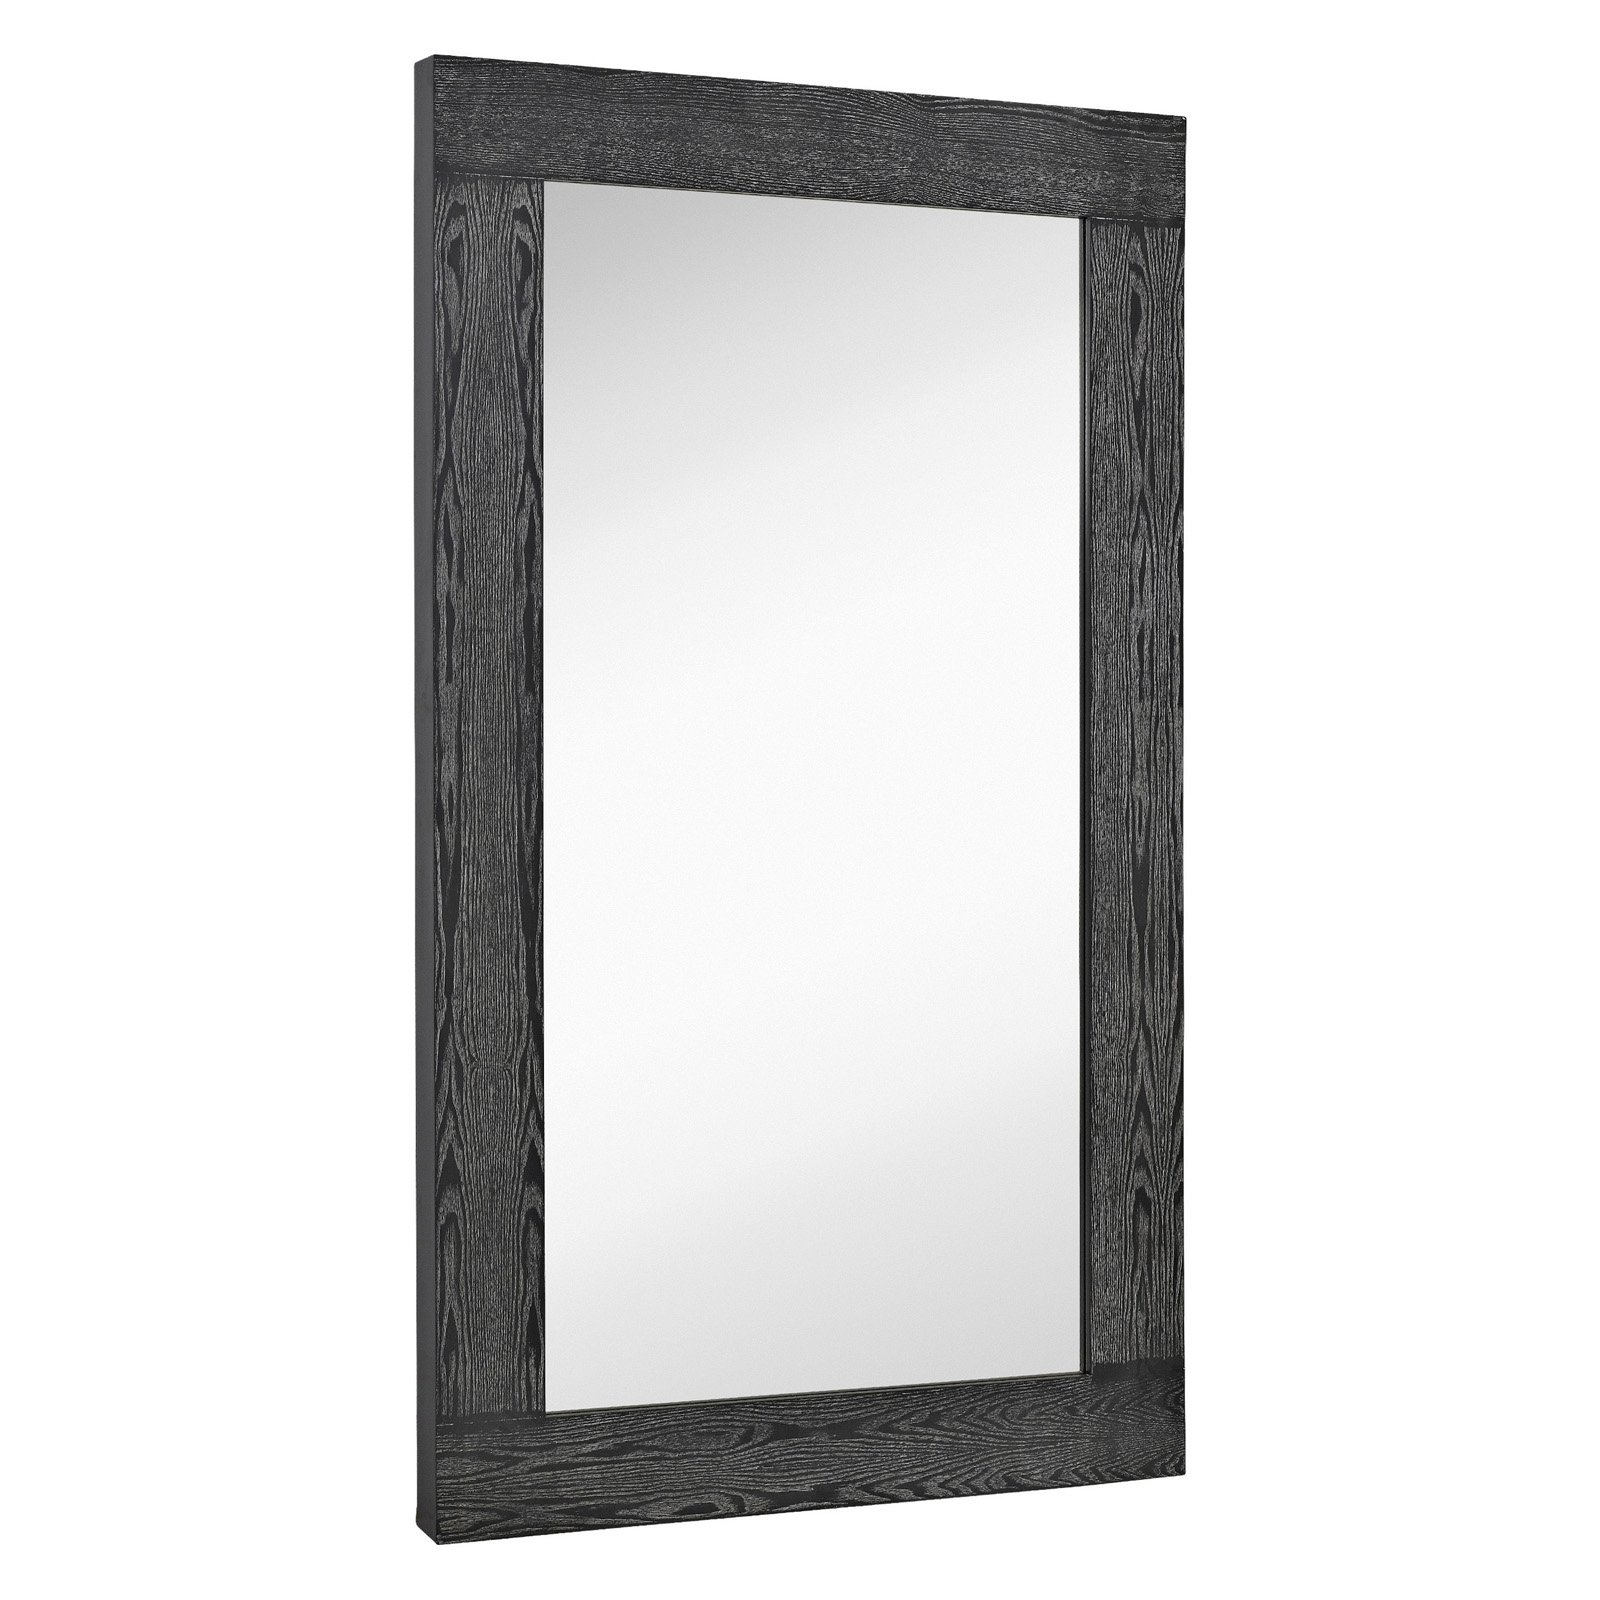 Majestic Oversized Modern Rectangular Wall Mirror Panel by